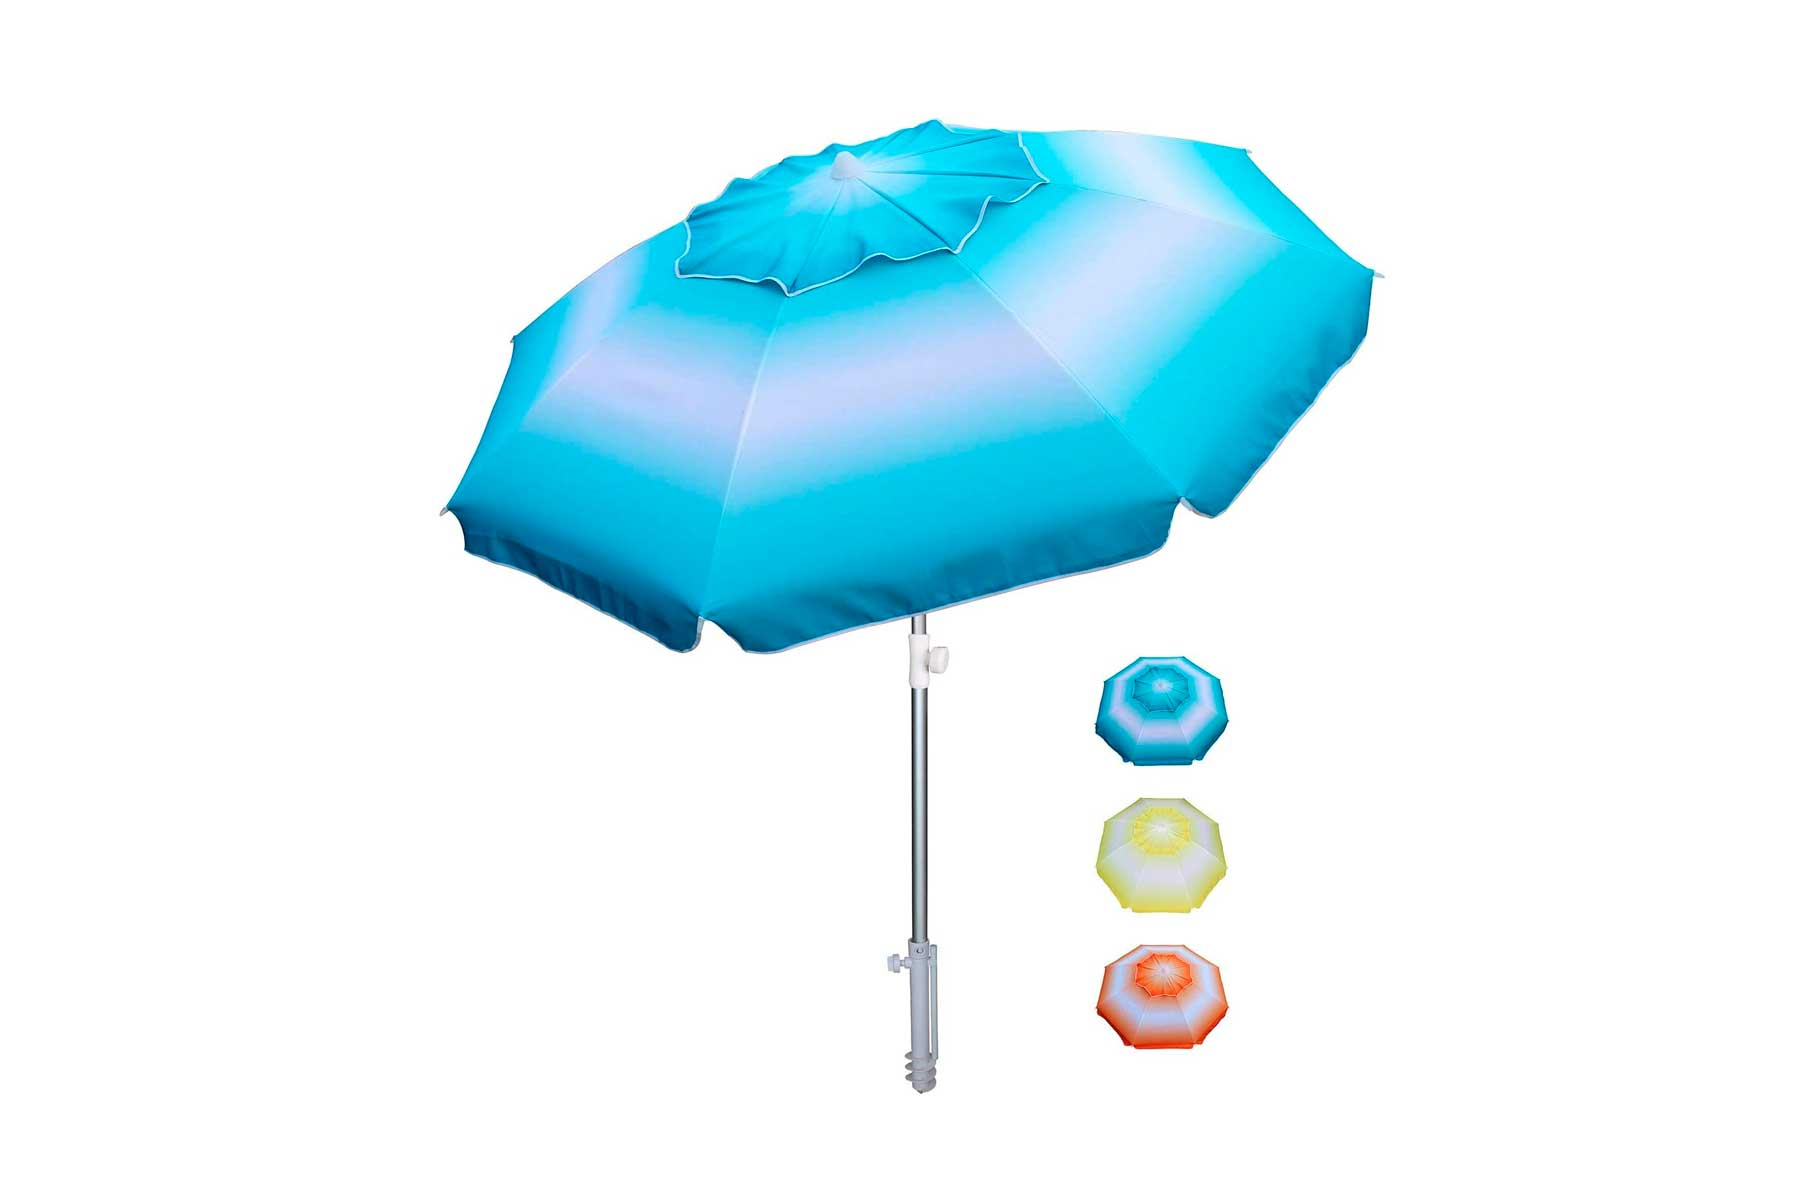 Product image of blue beach umbrella and showing different colors in the bottom right of yellow and orange